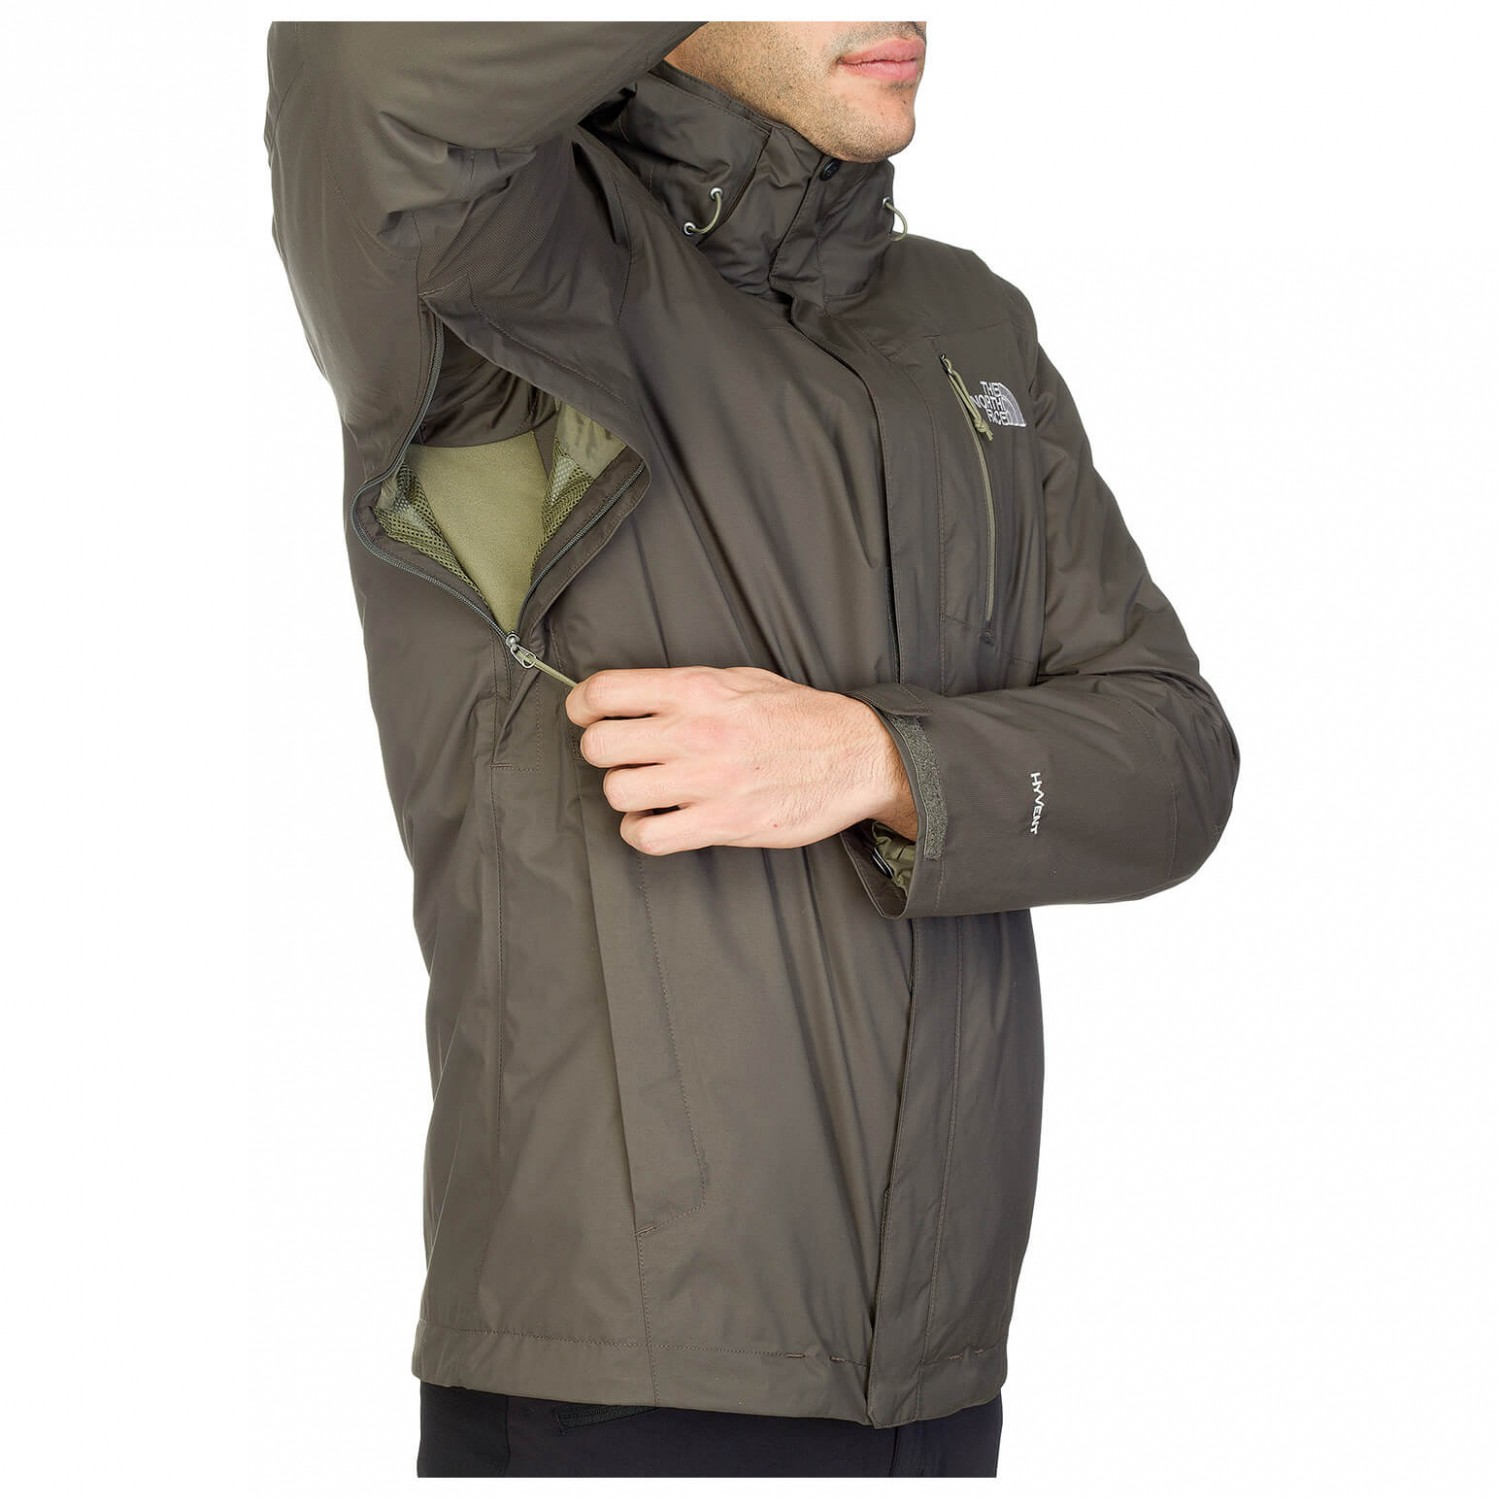 Where to buy the north face jackets